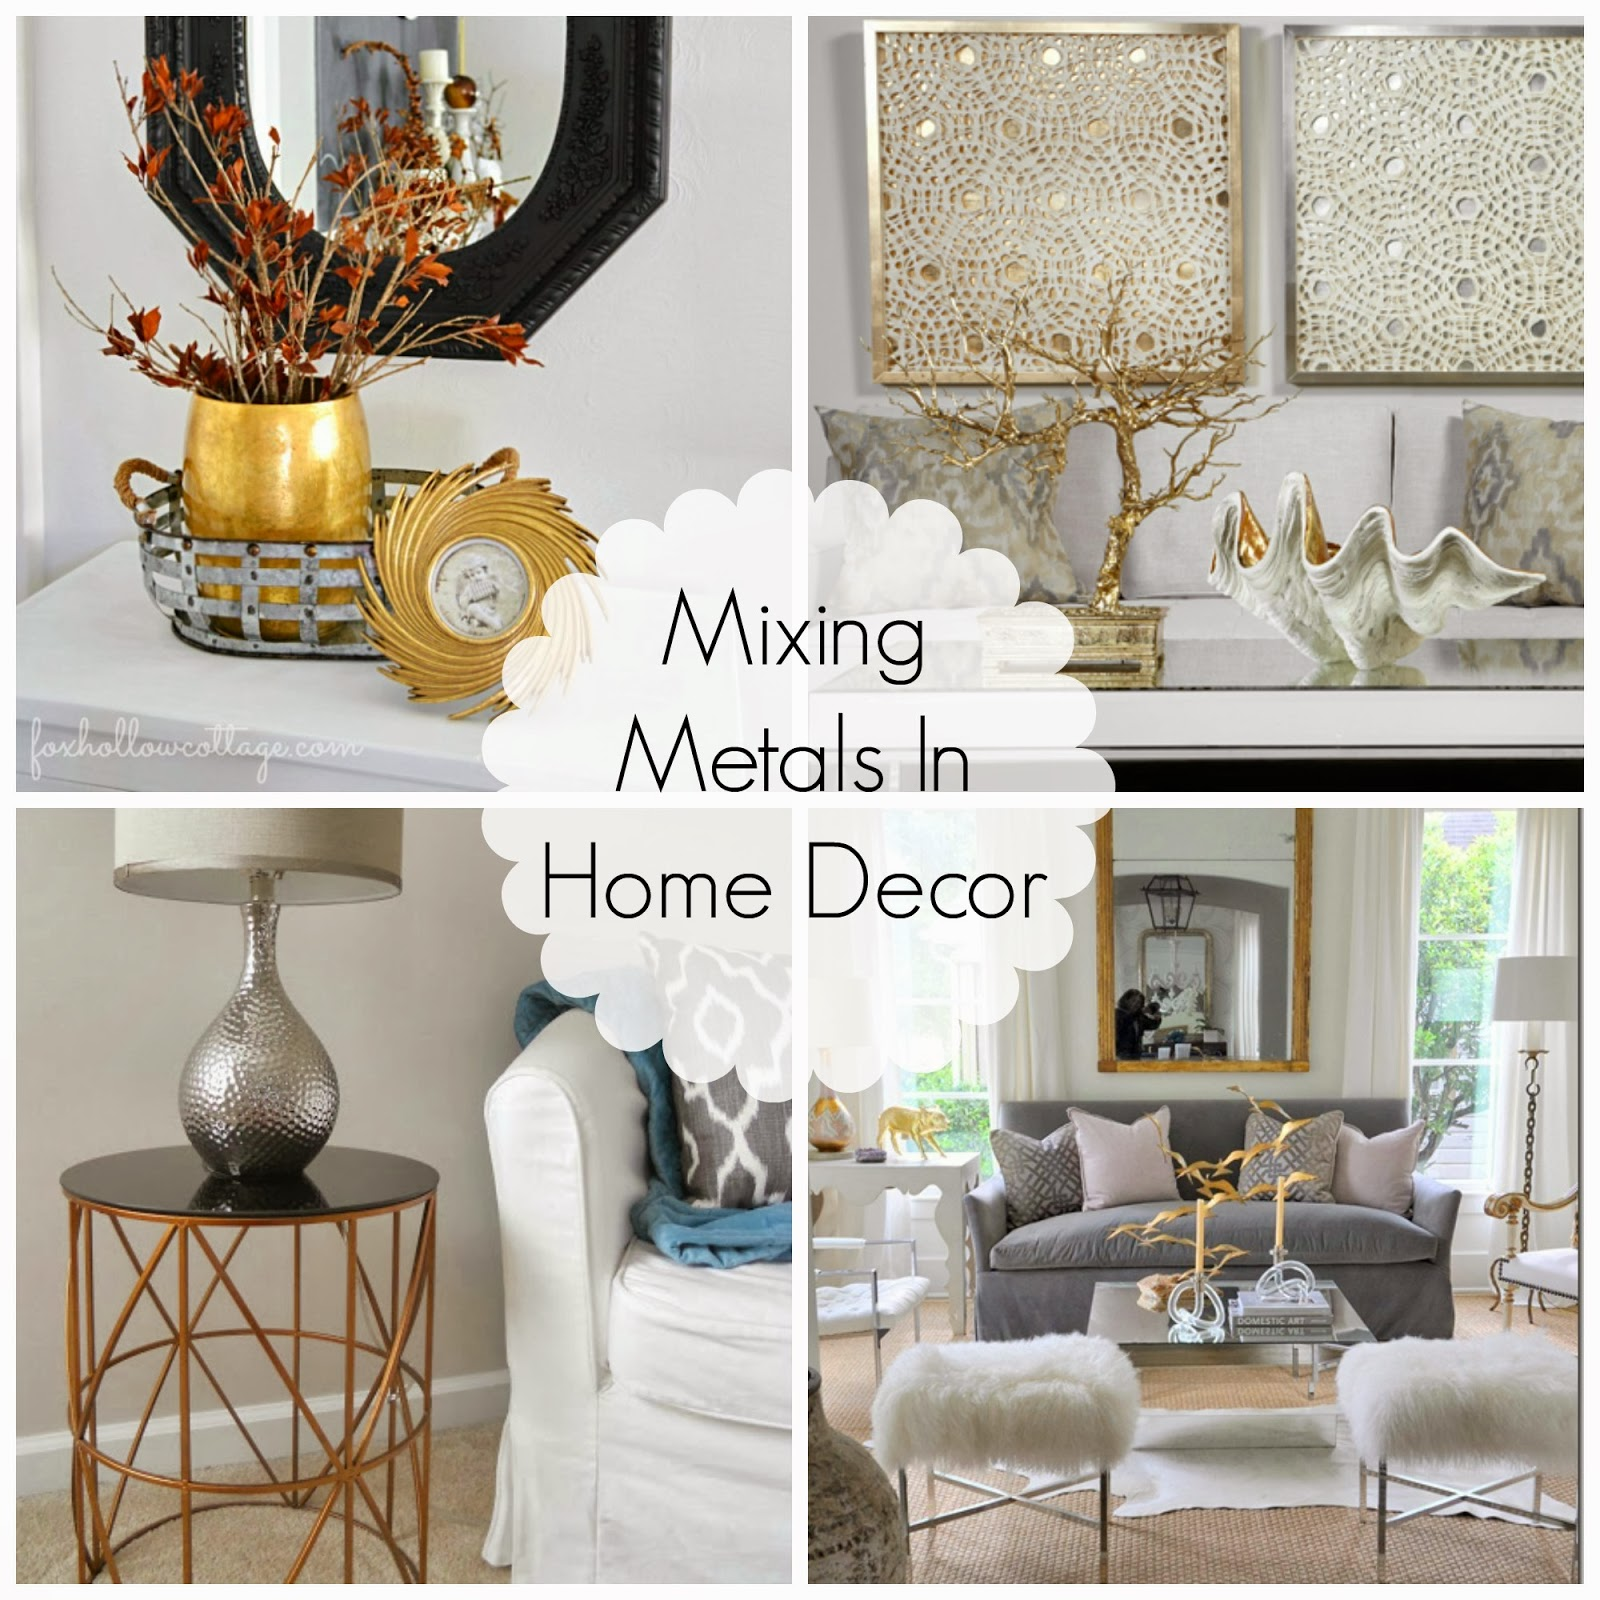 Decorating cents mixing metals in home decor for Home decoration design